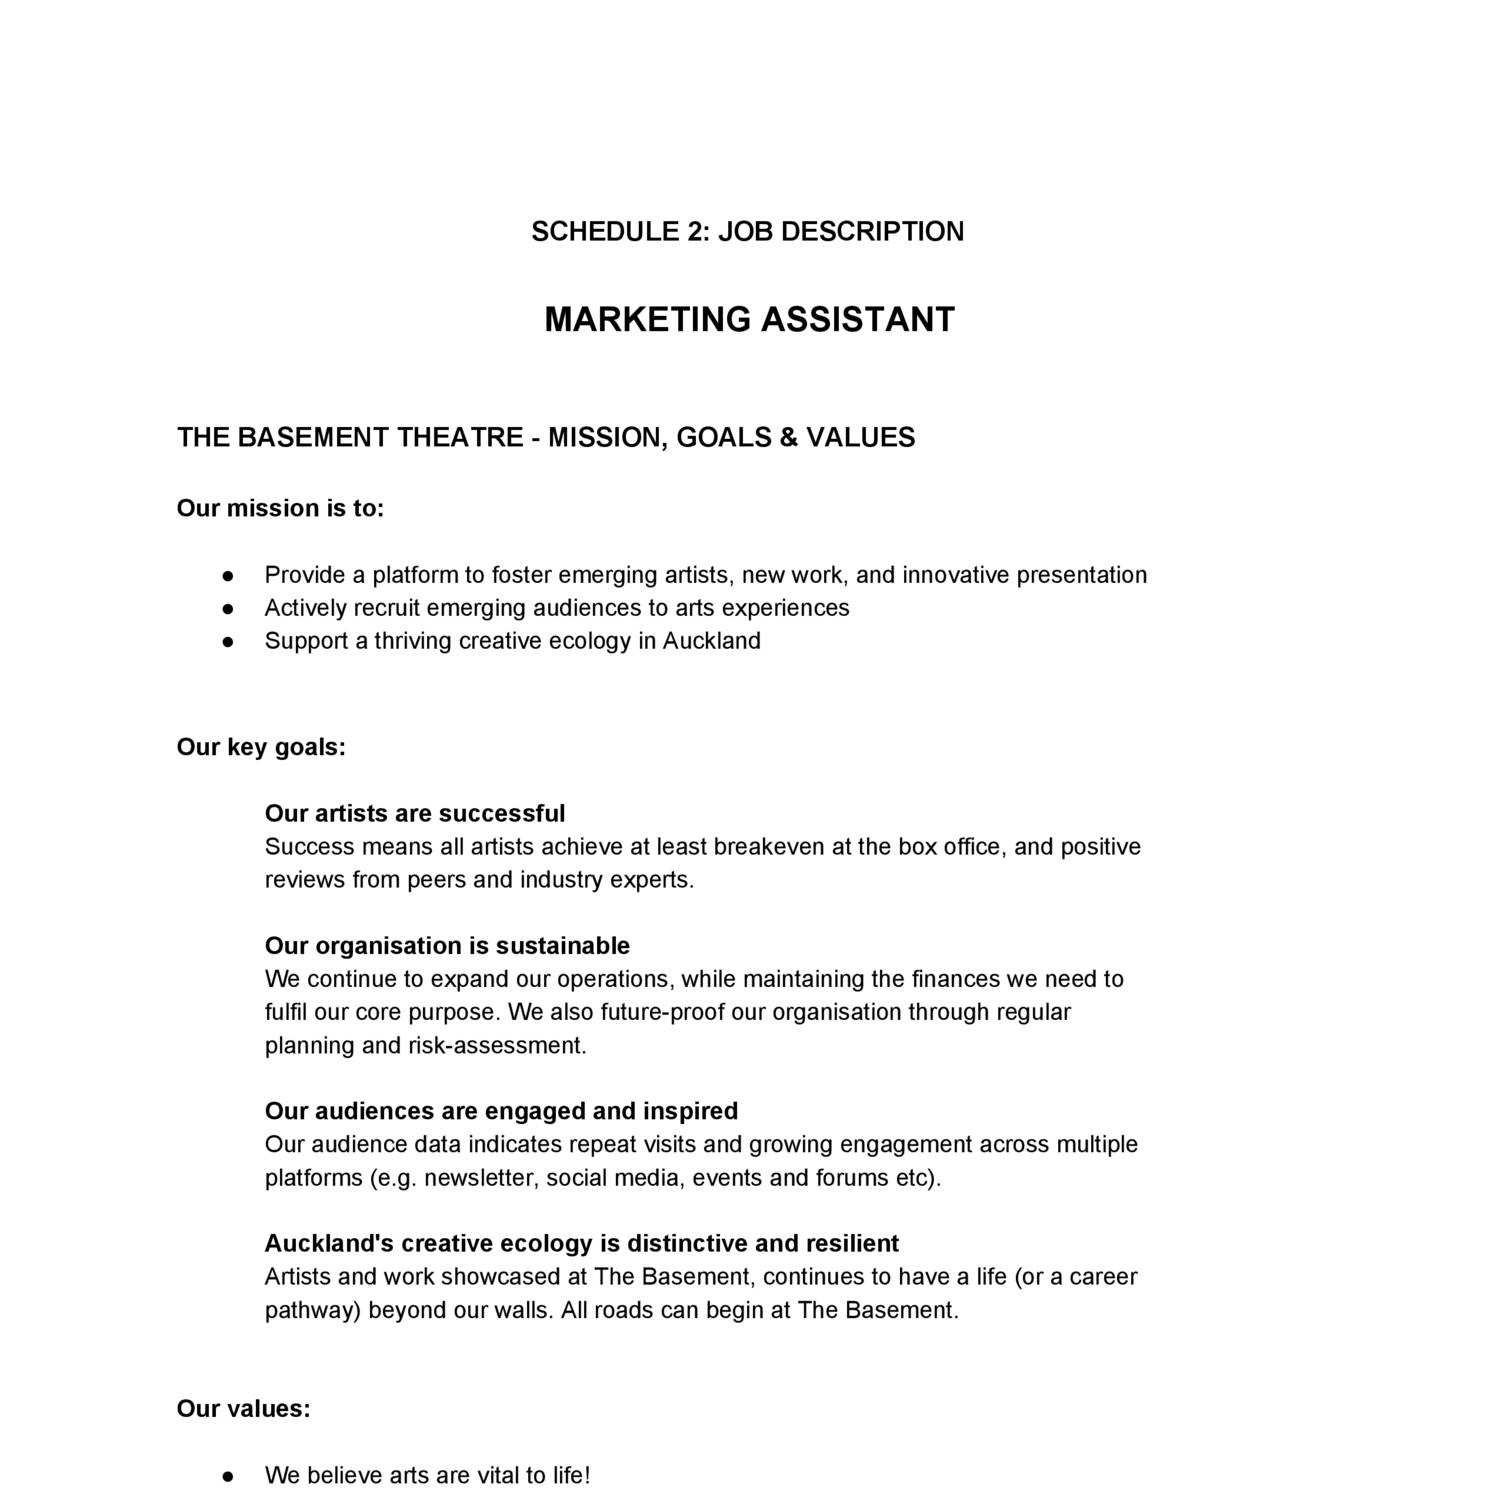 job description marketing assistant